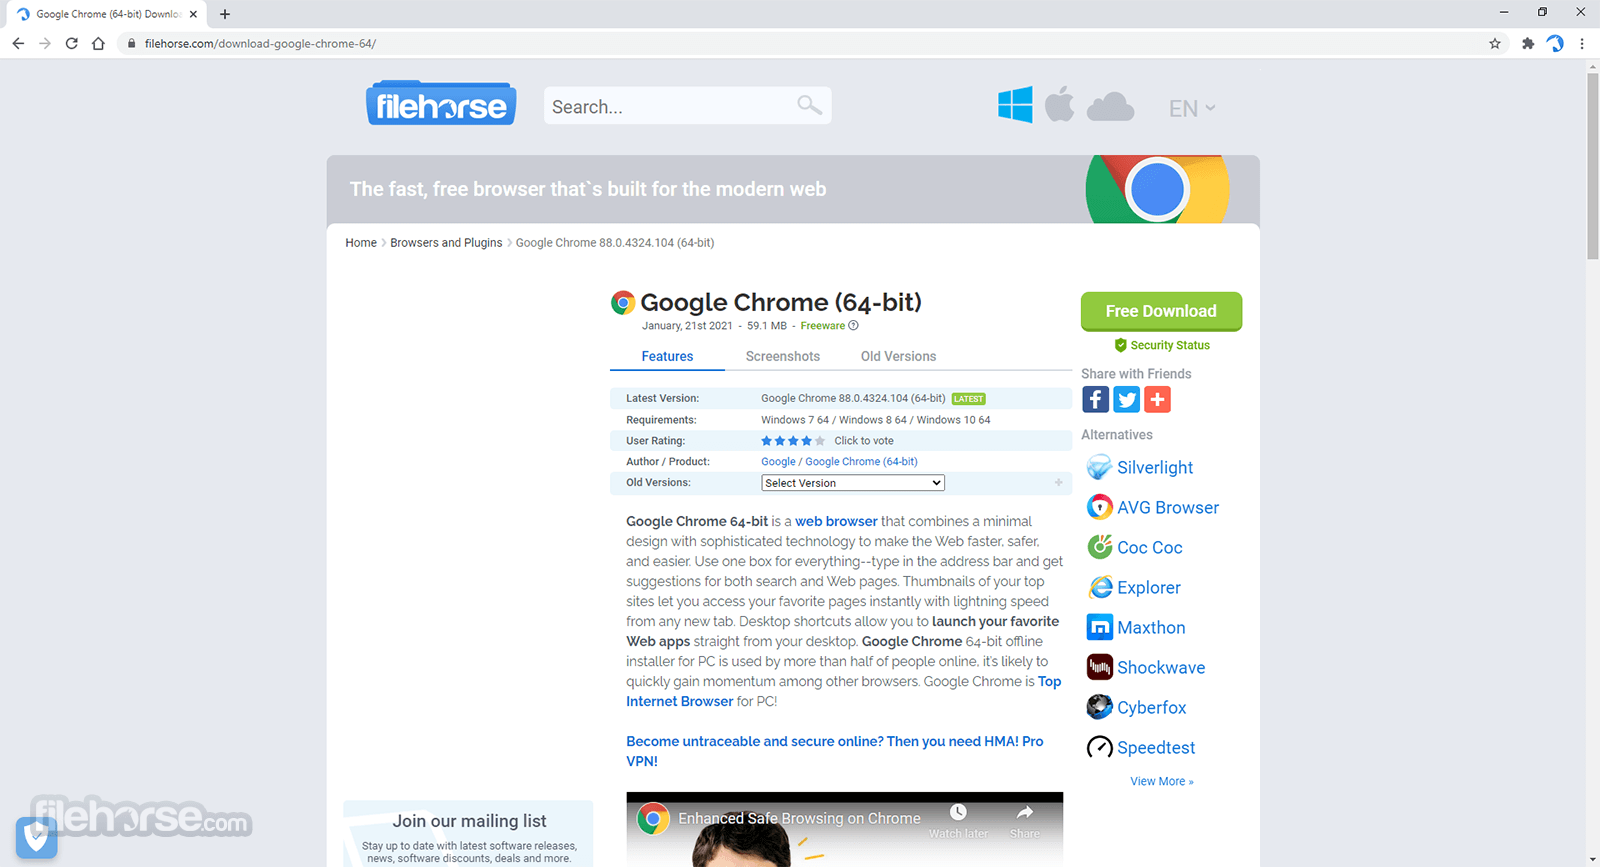 Google Chrome 67.0.3396.99 (64-bit) Screenshot 1